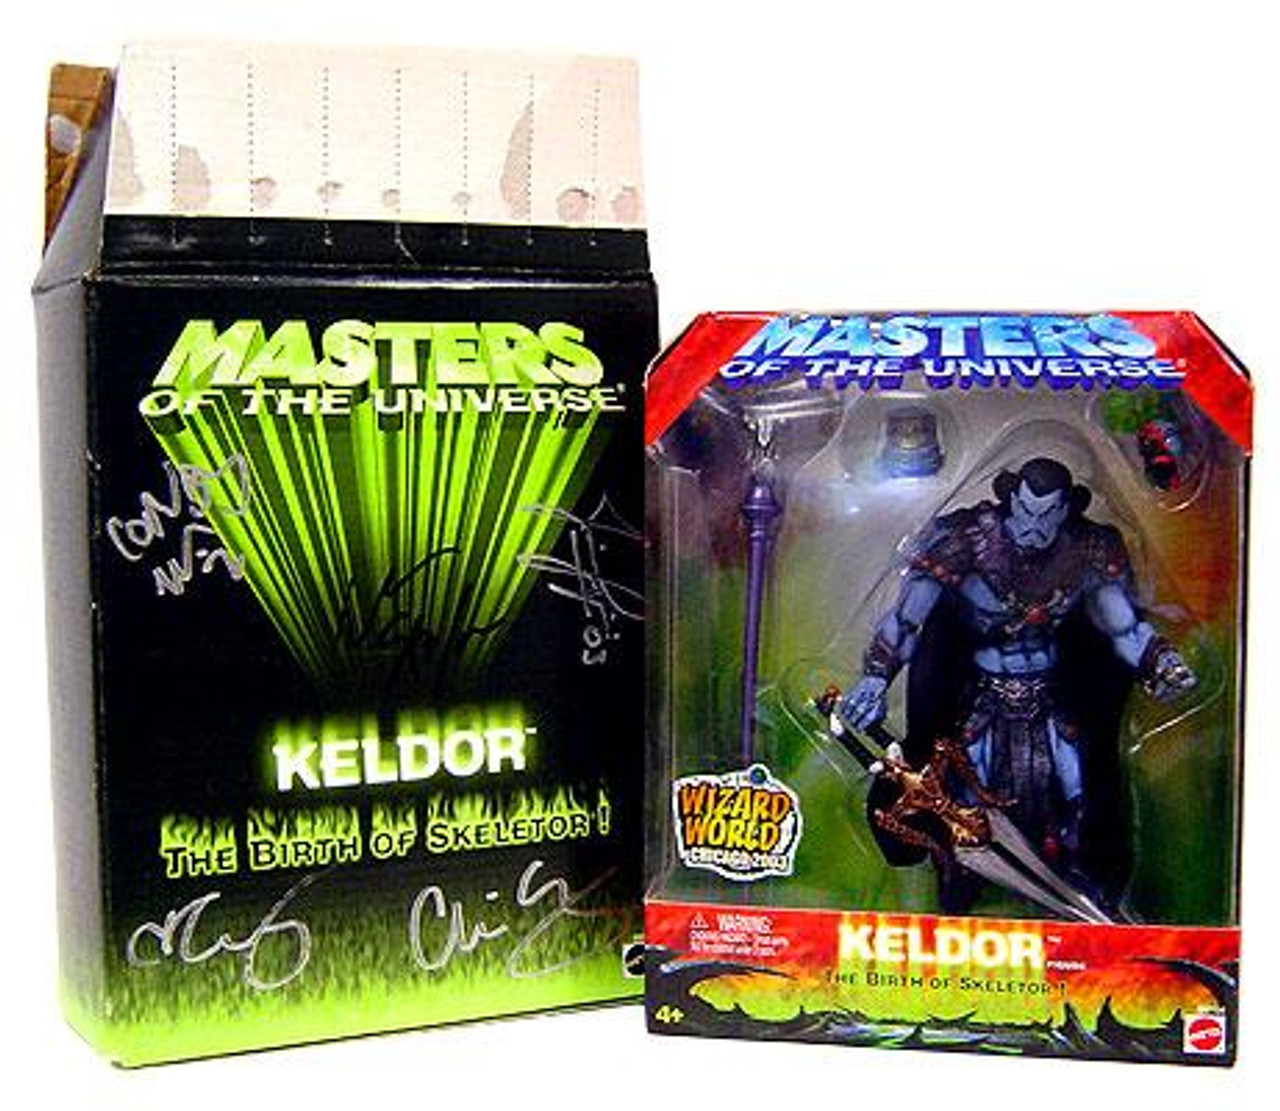 Masters of the Universe Keldor Exclusive Action Figure [Signed by the Four Horseman]